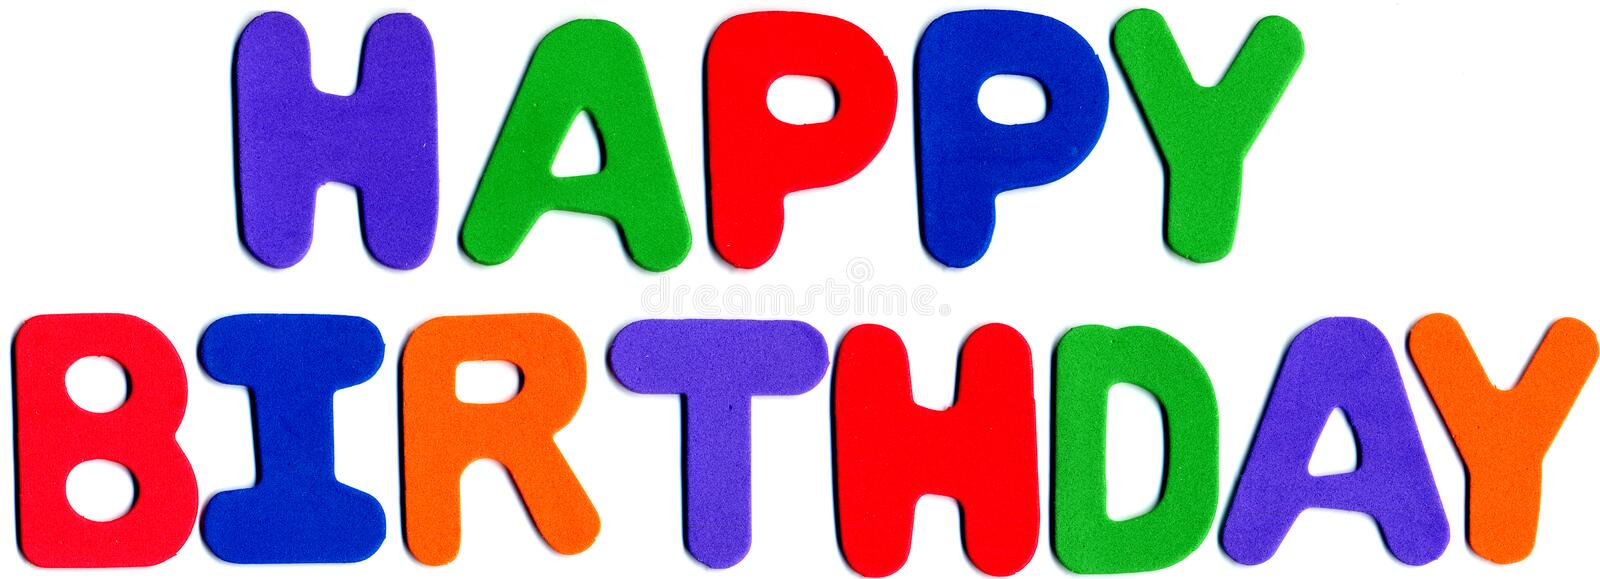 Happy birthday. Foam letters spelling happy birthday in varied colors stock images